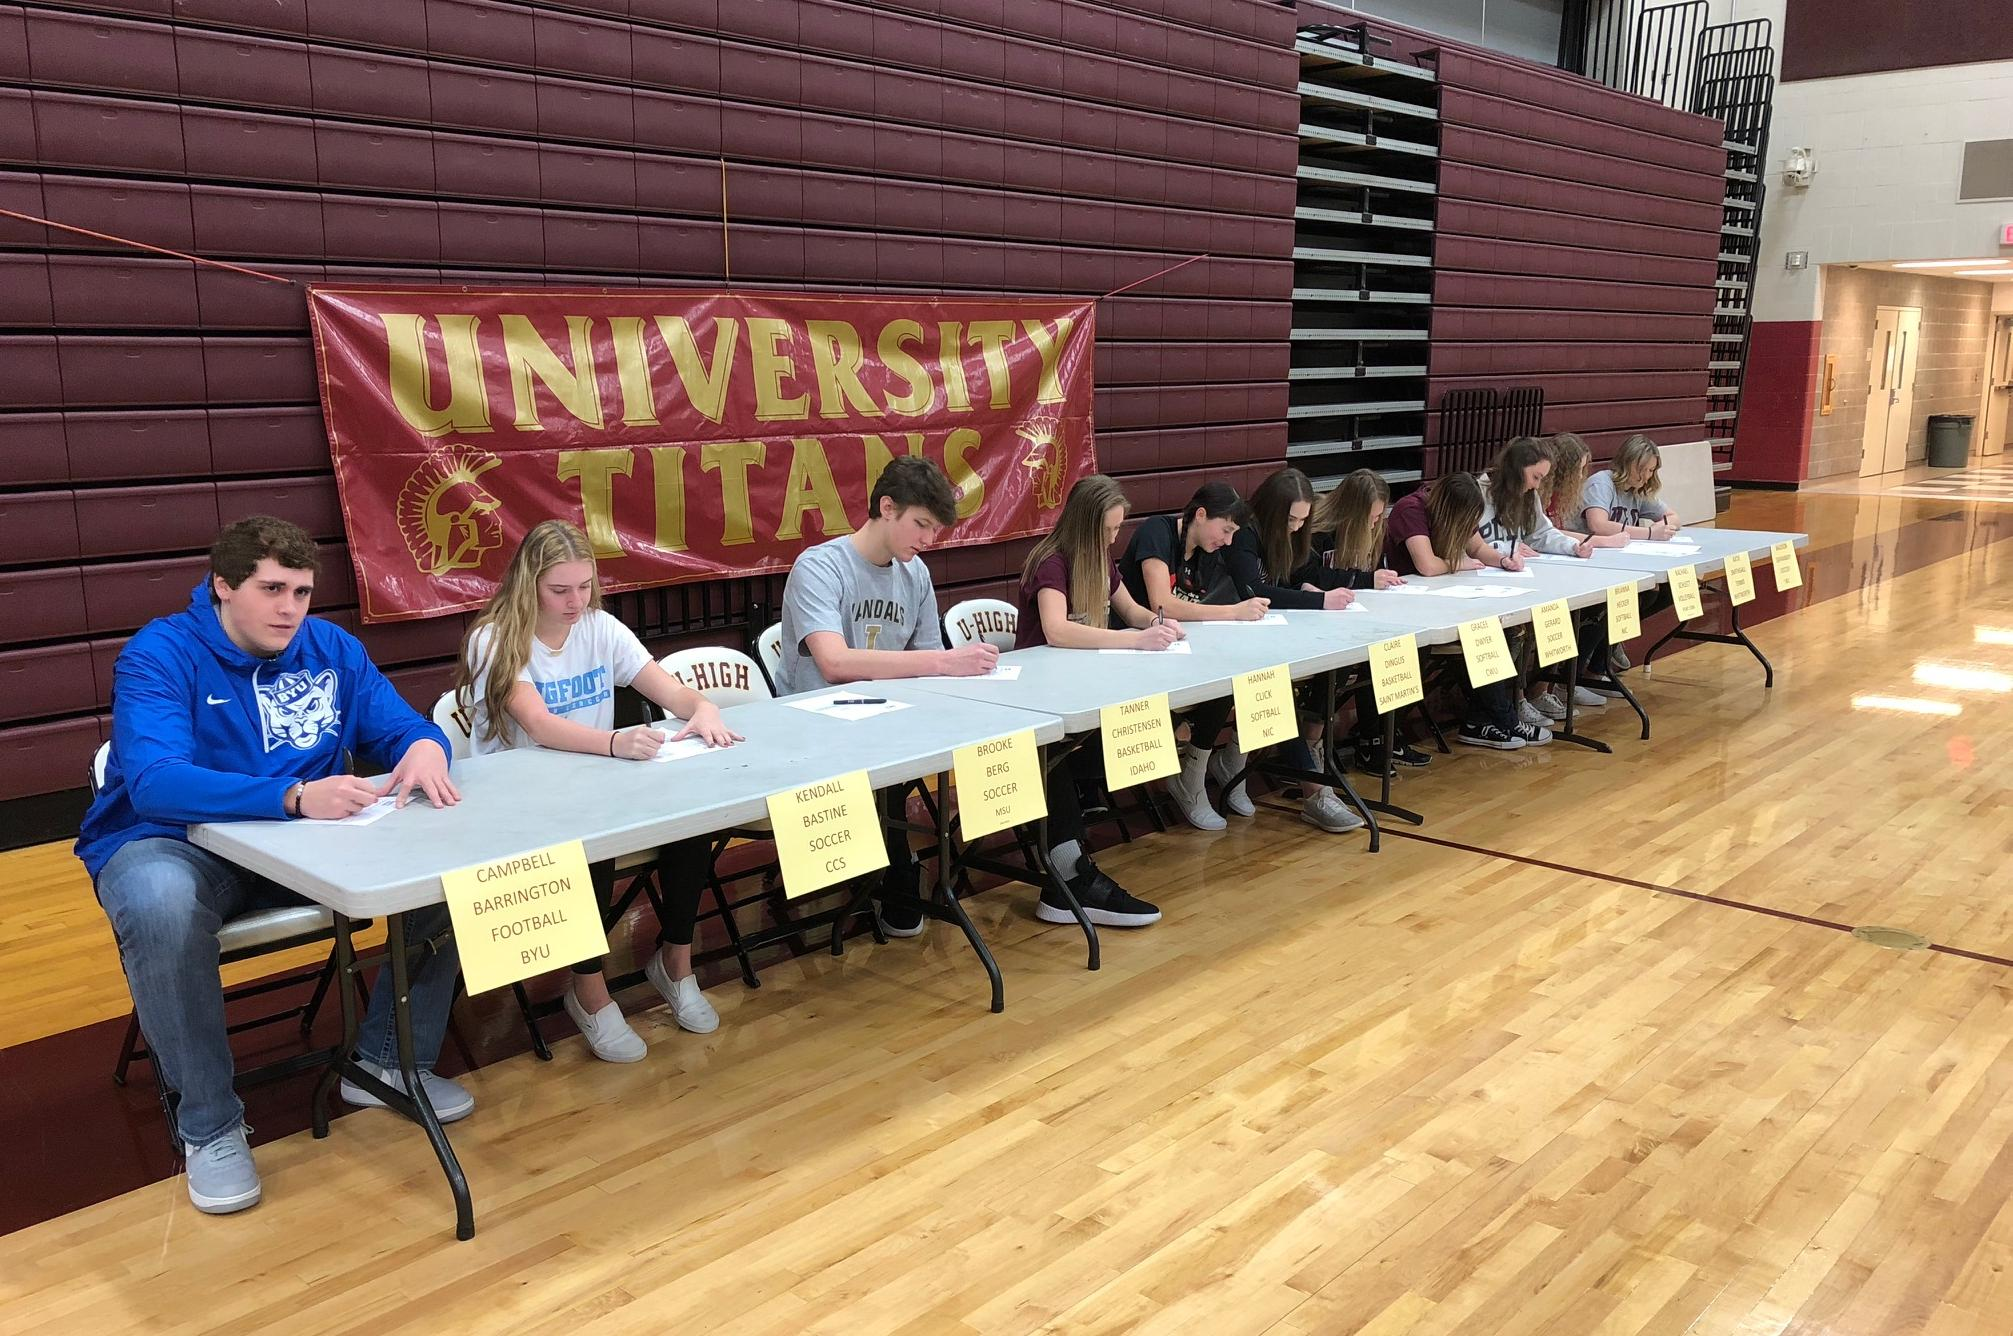 Campbell Barrington, Left, Joins Other University Hs Athletes Signing Their  National Letters Of Intent